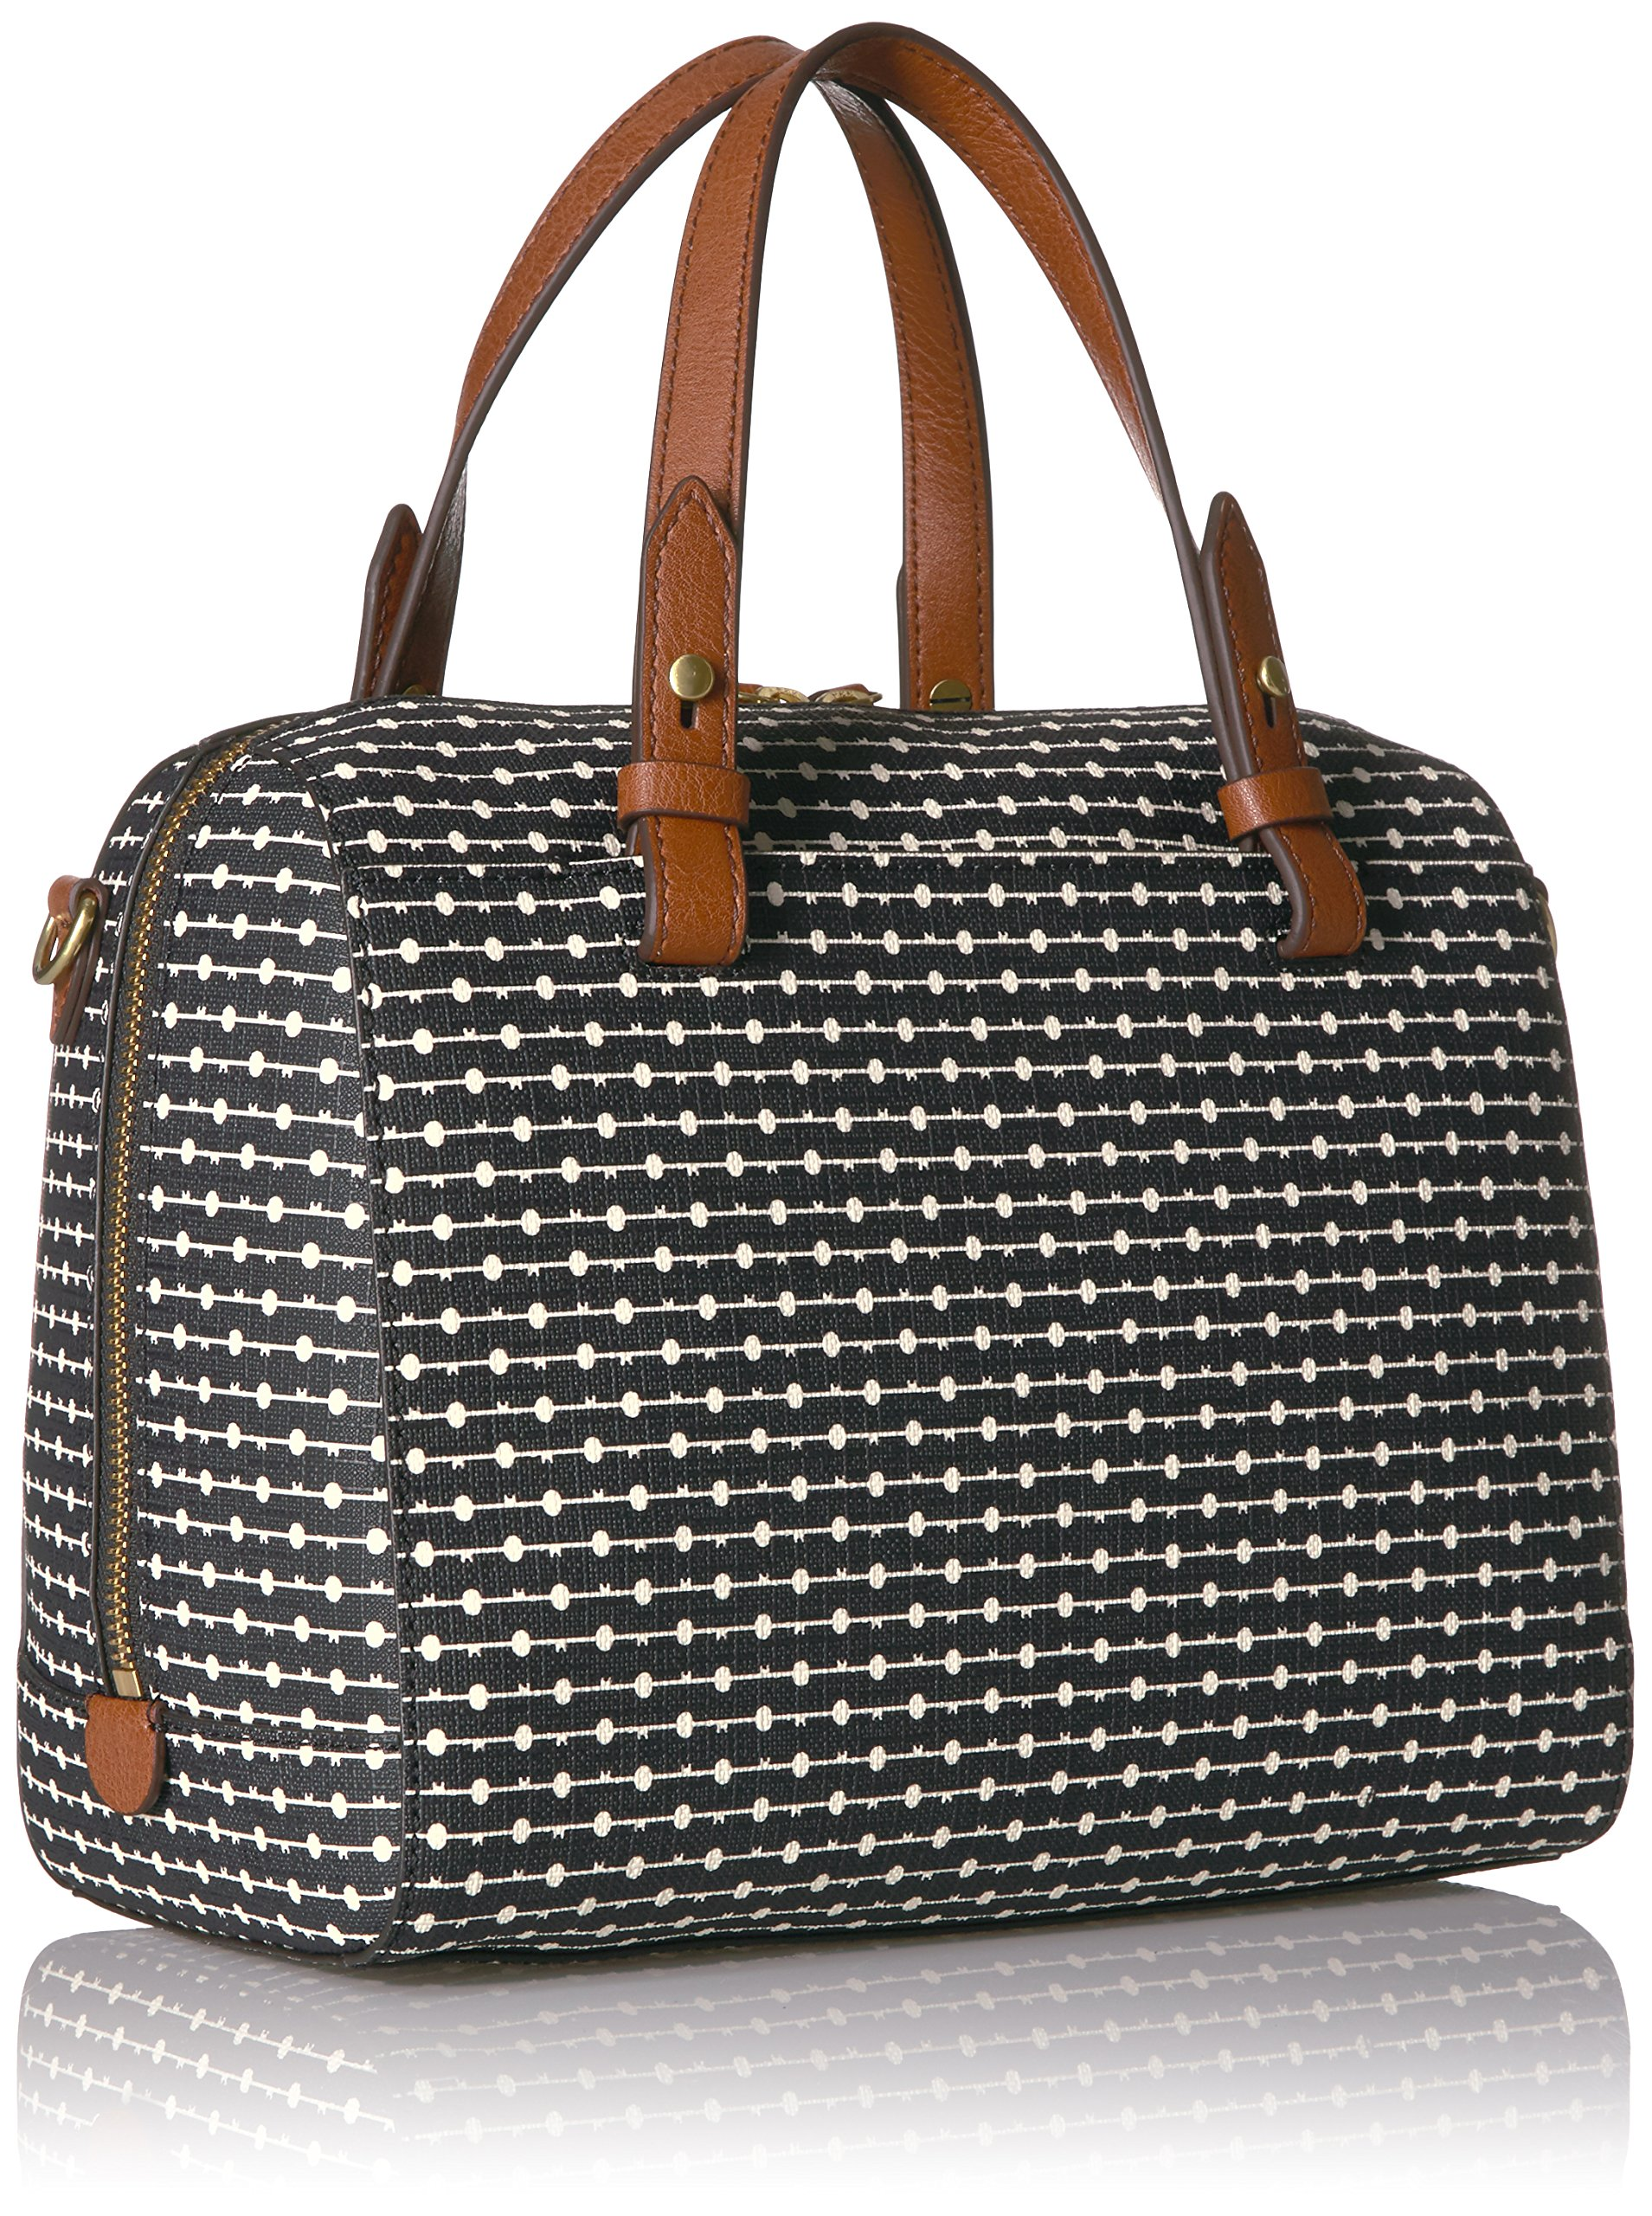 Fossil Rachel Satchel Handbag, Black Dot by Fossil (Image #2)